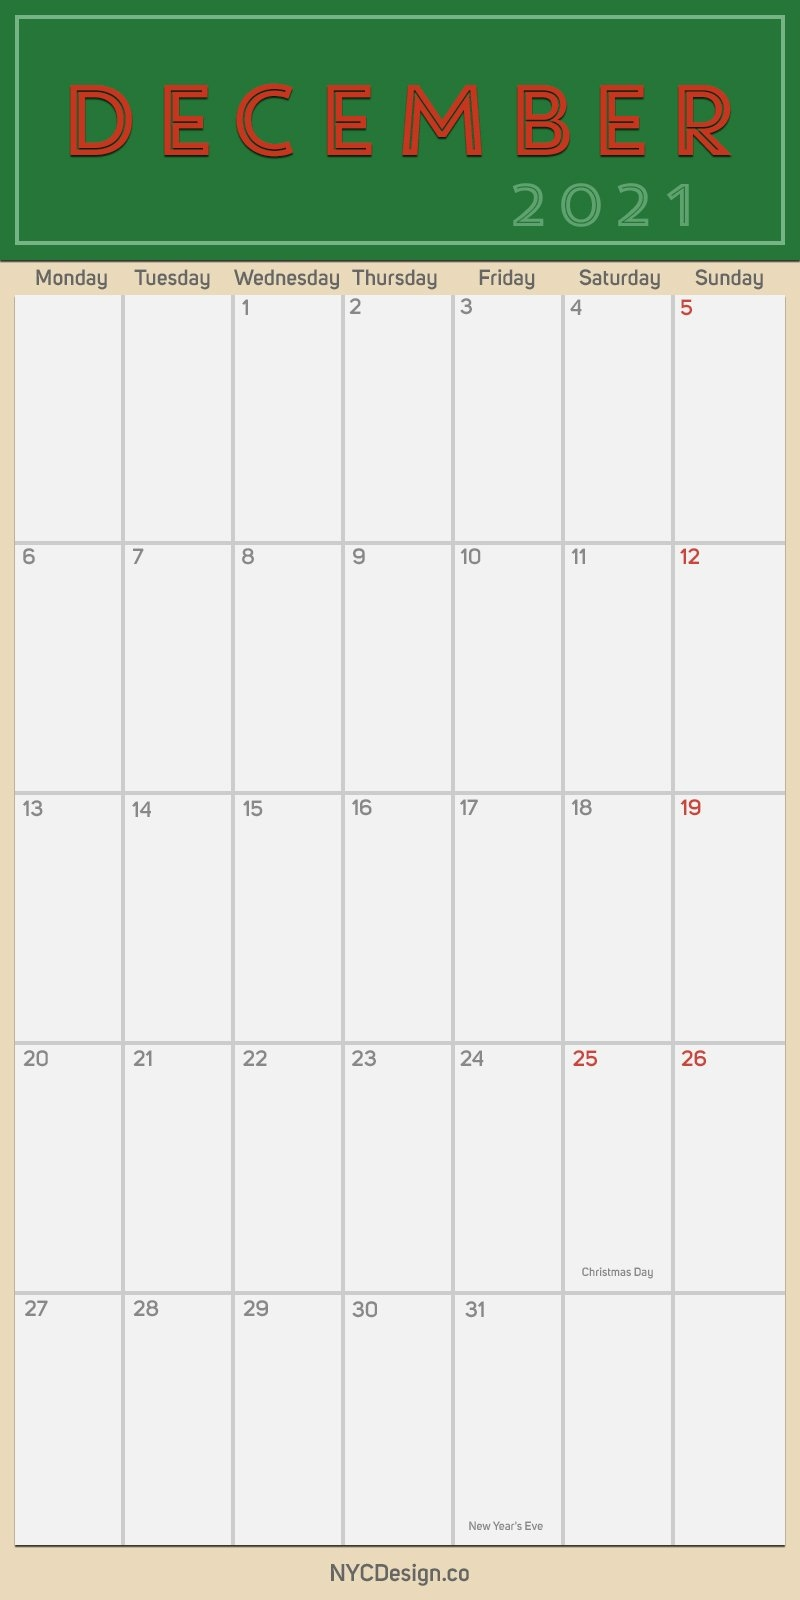 2021 December - Monthly Calendar With Holidays, Printable Free, Pdf - Monday Start - Nycdesign for 2021 Monthly Calendar With Holidays Printable Pdf Photo